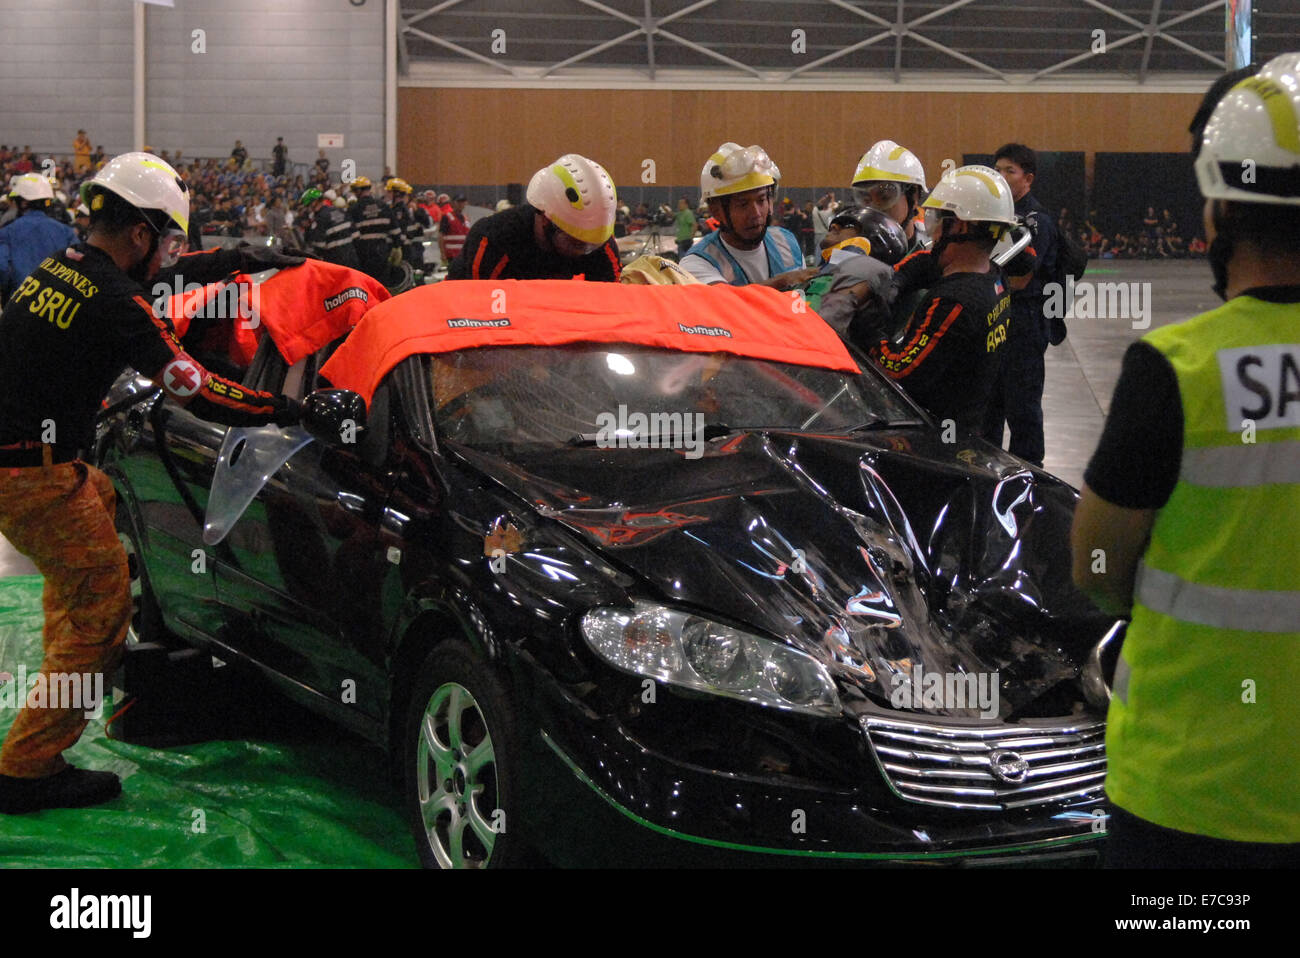 (140913) -- SINGAPORE, Sept. 13, 2014 (Xinhua) -- Fire fighters try to save people trapped in a car crash in a simulated - Stock Image